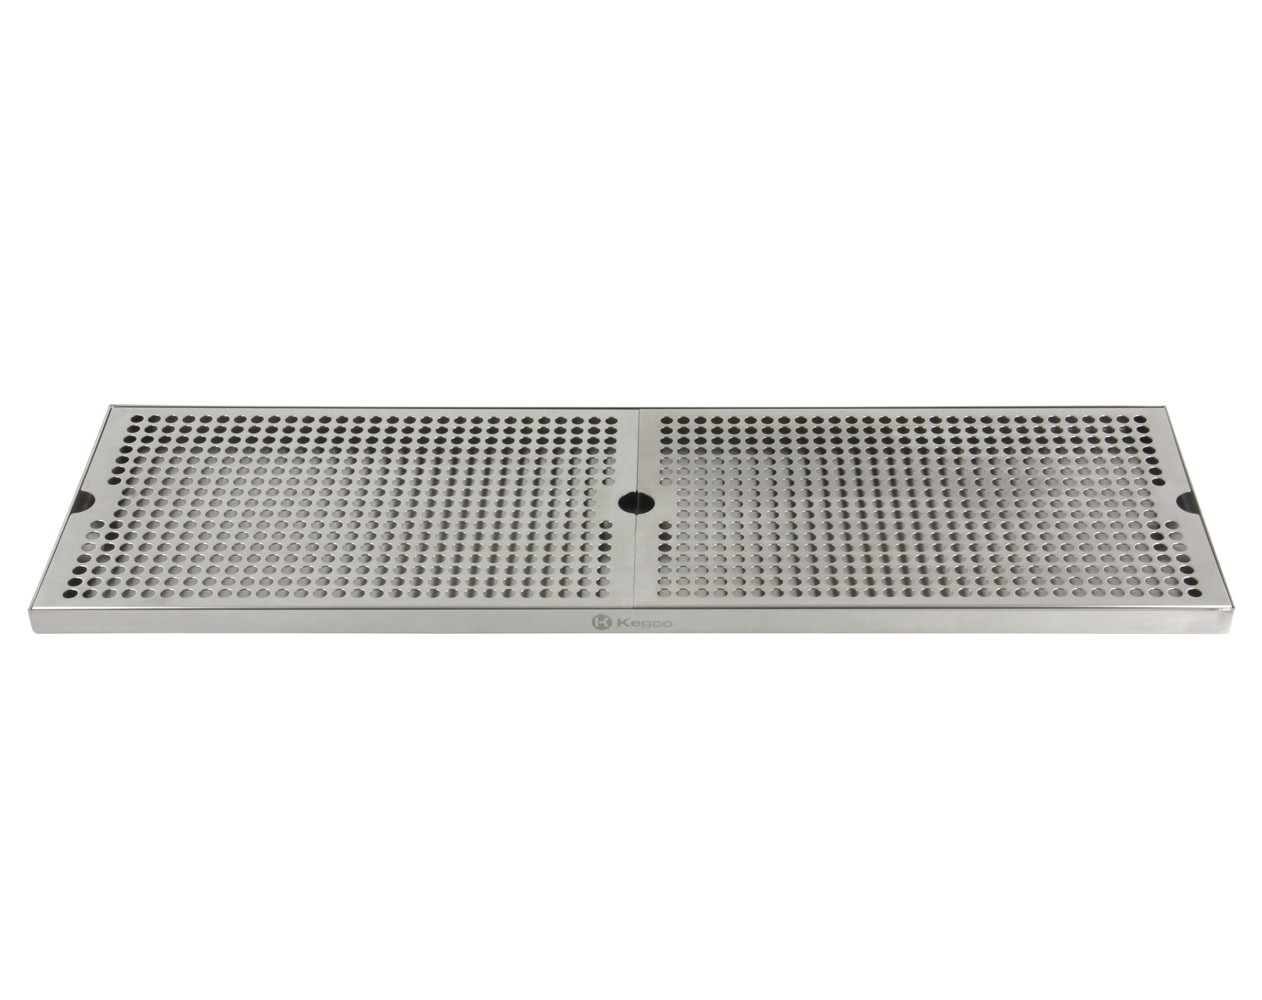 Kegco 24 x 9 Surface Mount beer Drip Tray with Drain SESM 249D FAST SHIPPING